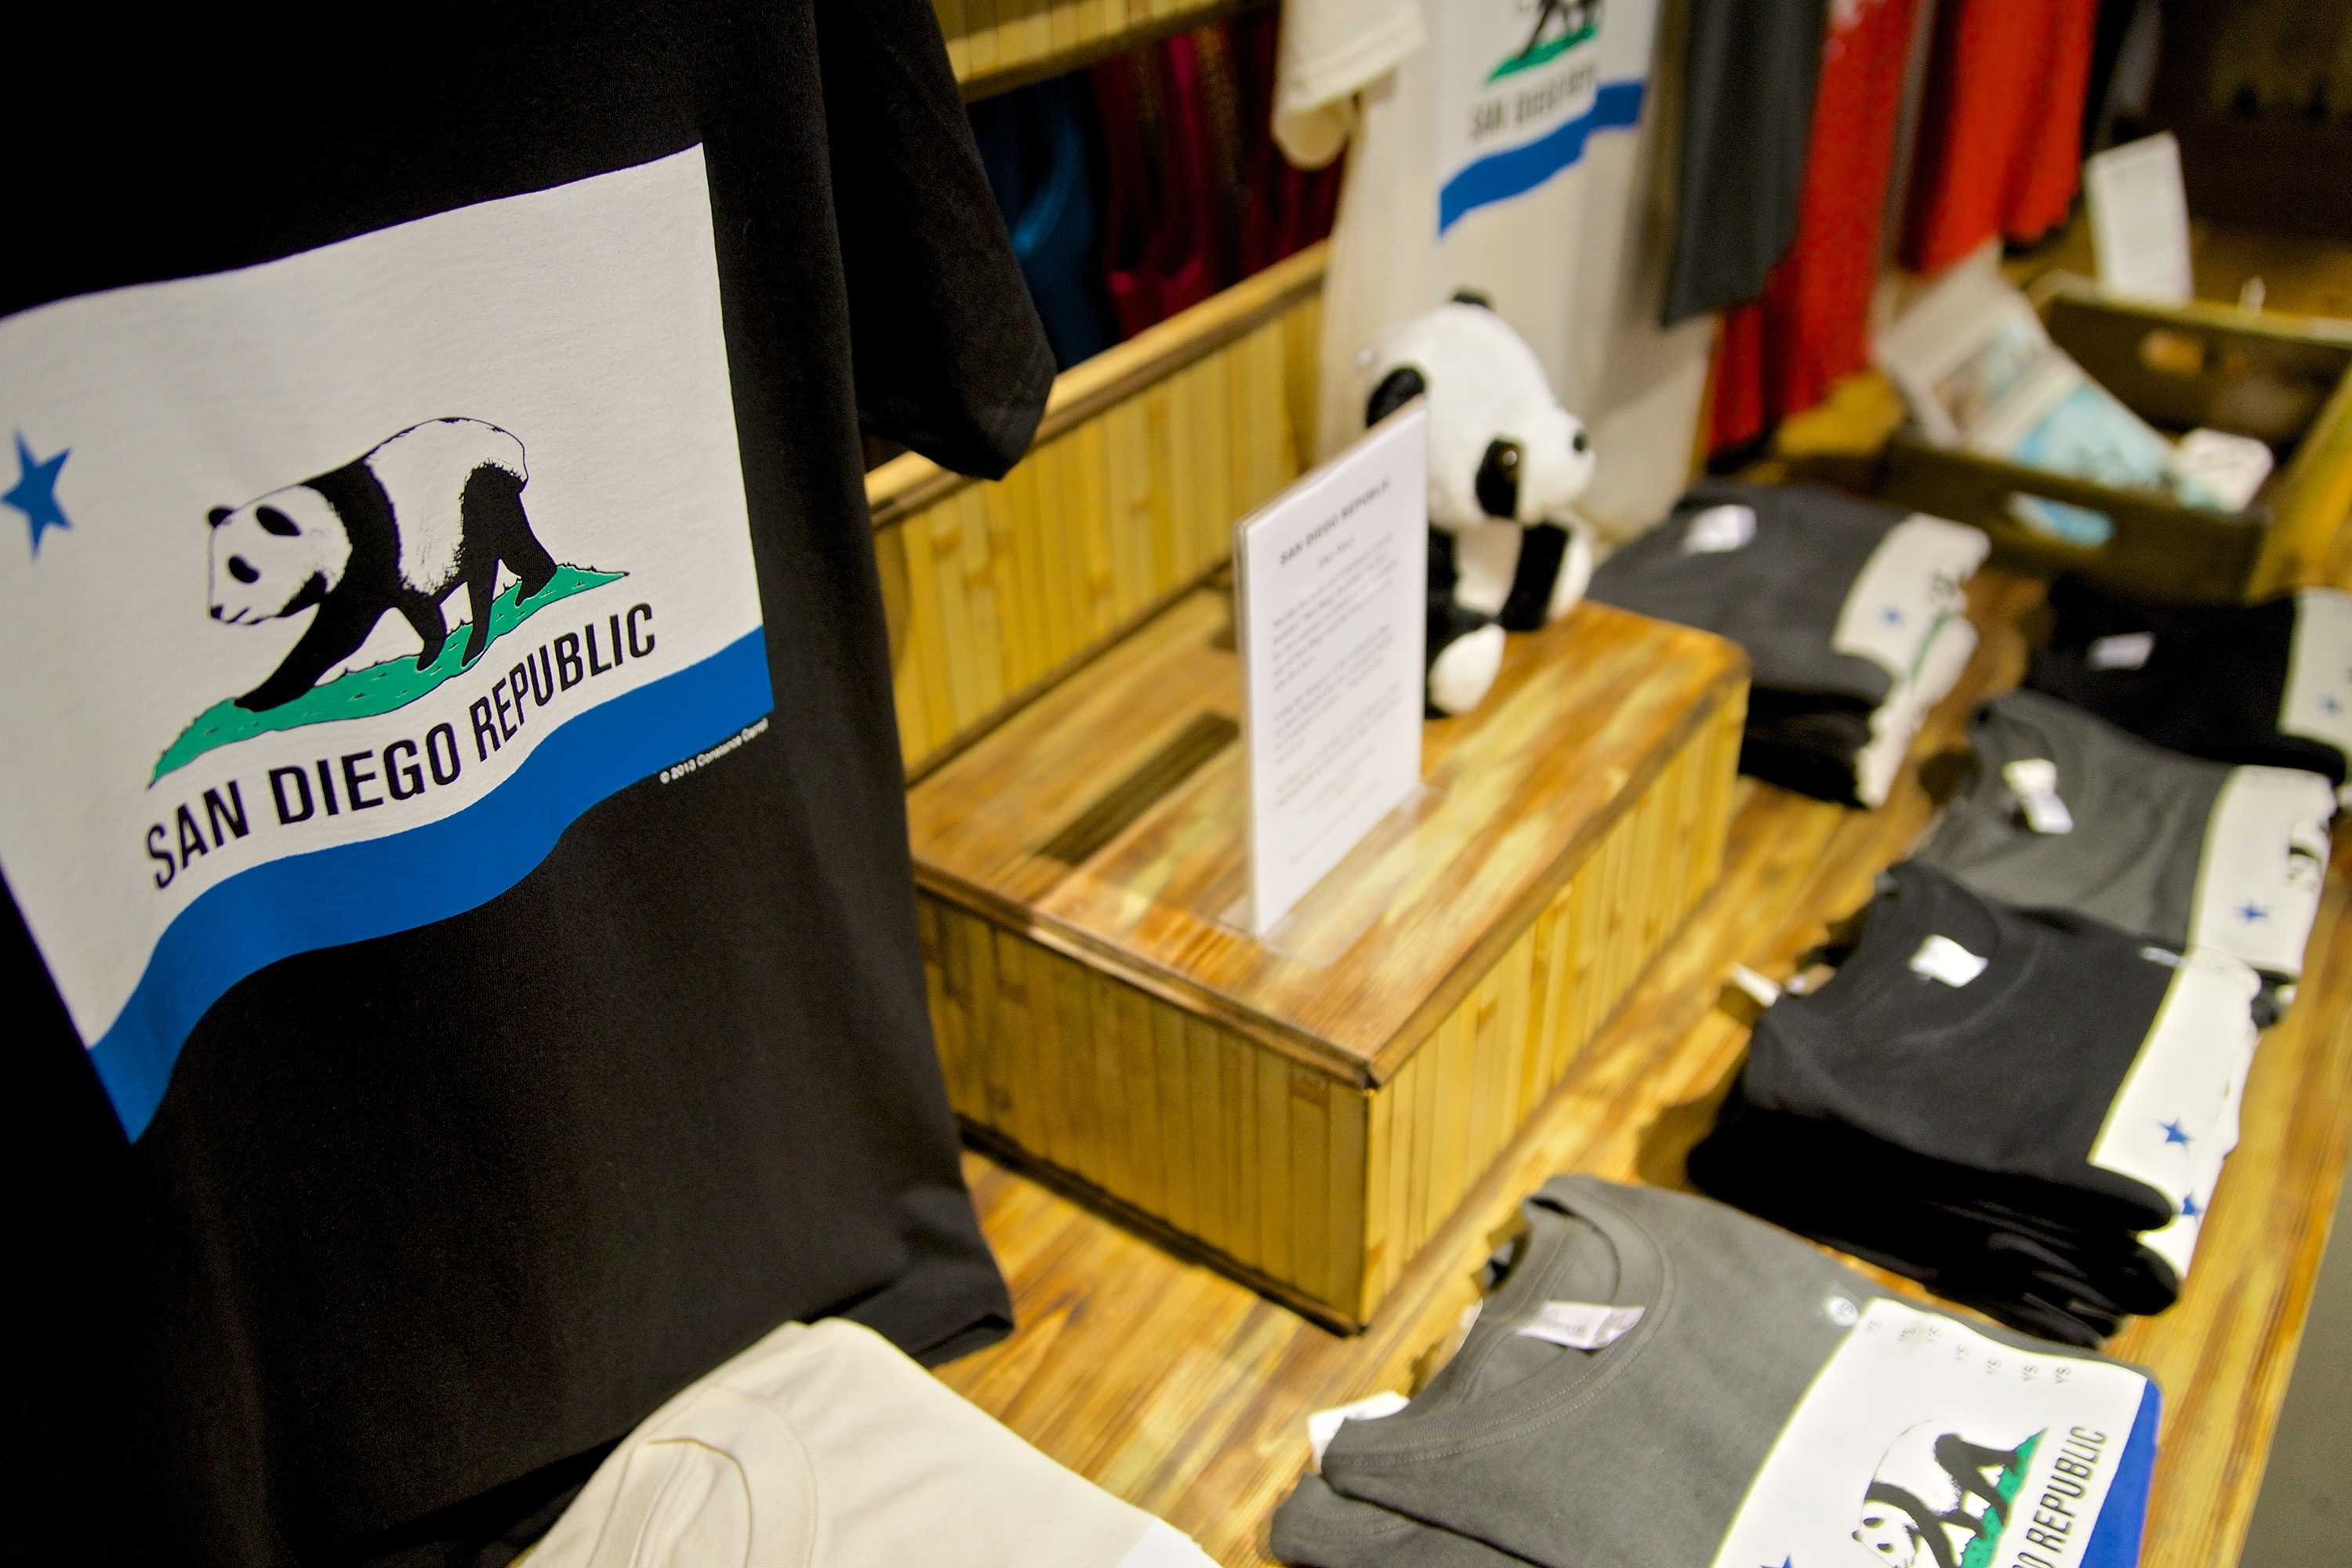 T-Shirts produced by San Diego Republic, a private venture of San Diego Community College District Chancellor Constance M. Carroll and business partner public radio host Martha Barnette are displayed in Simply Local at the Headquarters at Seaport District. Photo credit: Troy Orem